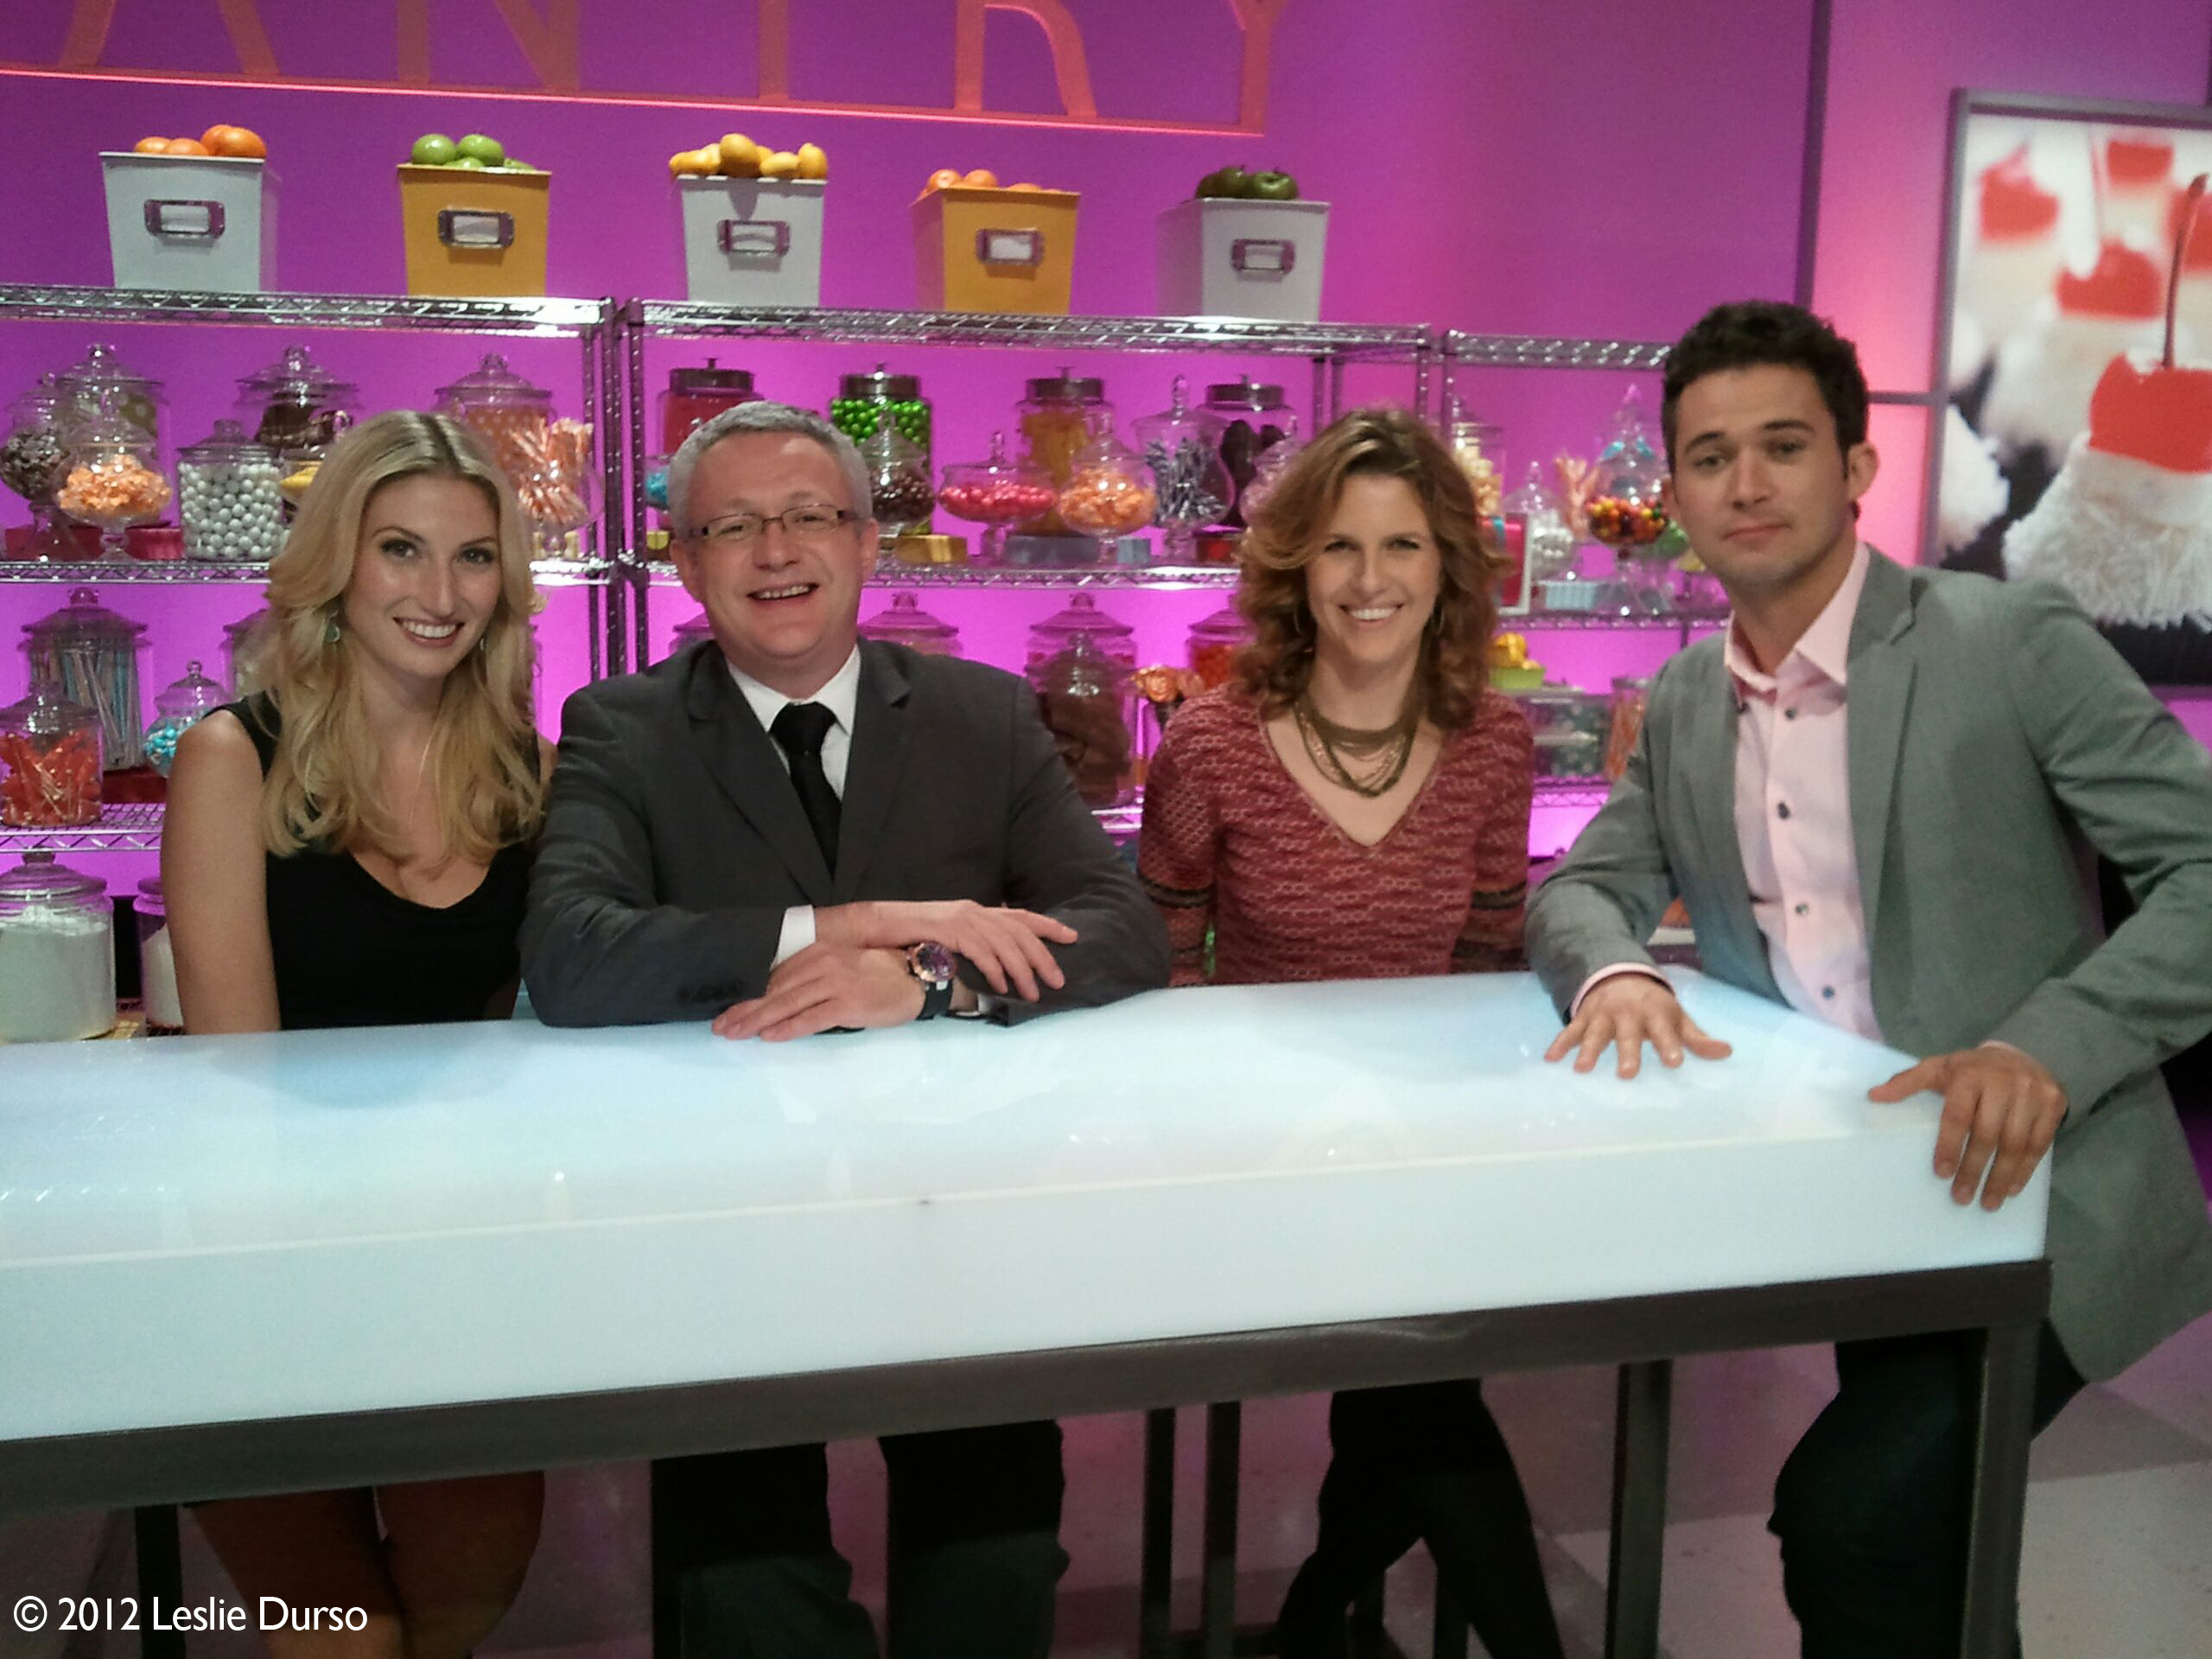 Leslie Durso Appears On Food Network's First Ever Vegan Cupcake Wars